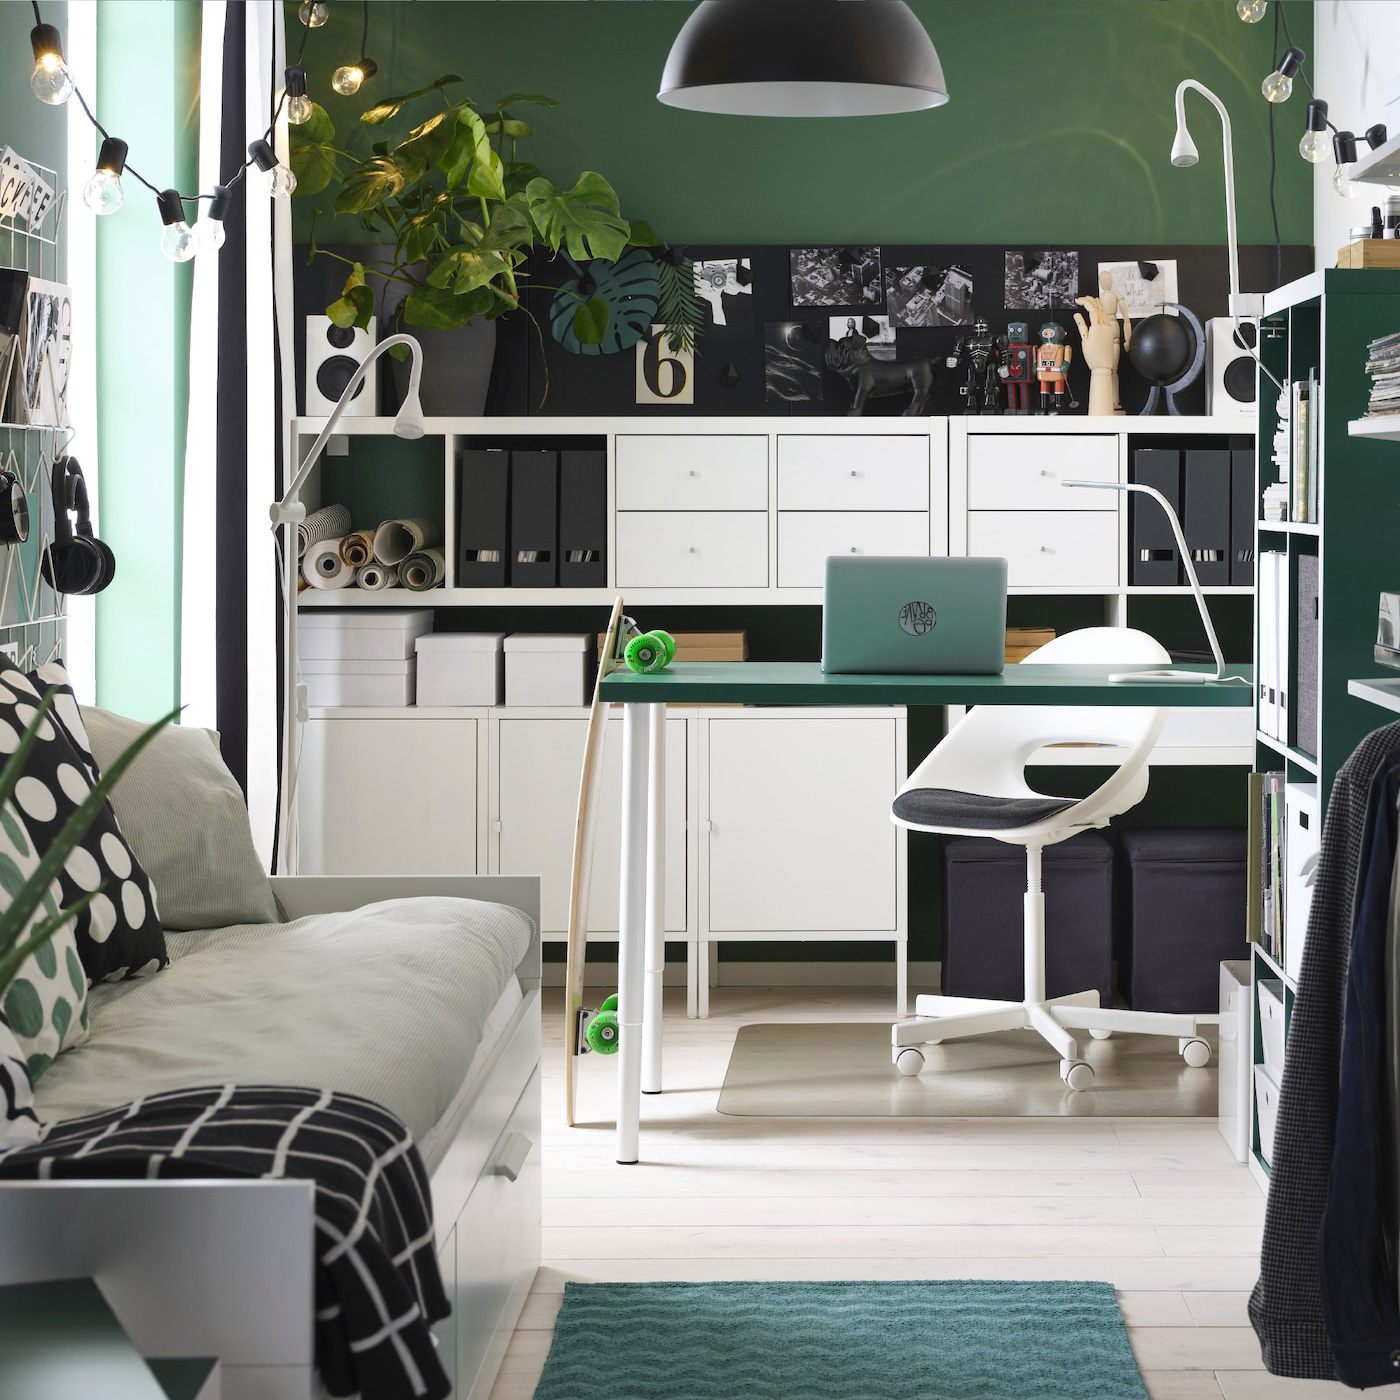 A small, overall green room with a green table, white shelving units, a day-bed, an open wardrobe and a black pendant lamp.